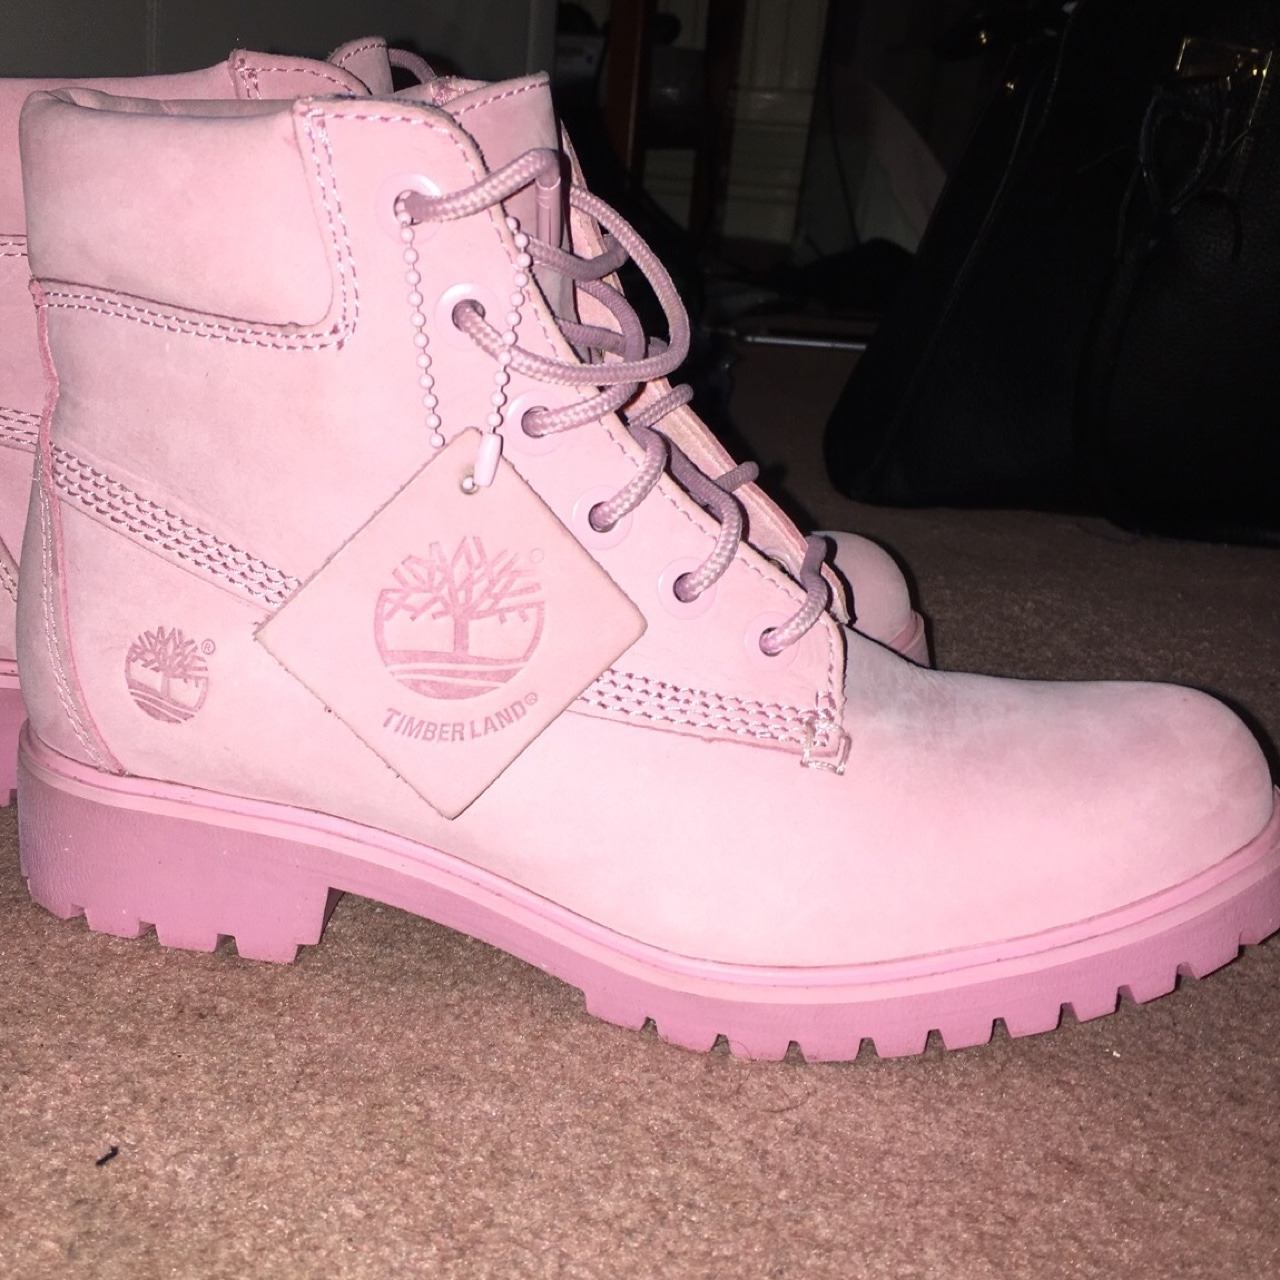 Timberland Limited Edition Size 5 timbs boots Depop